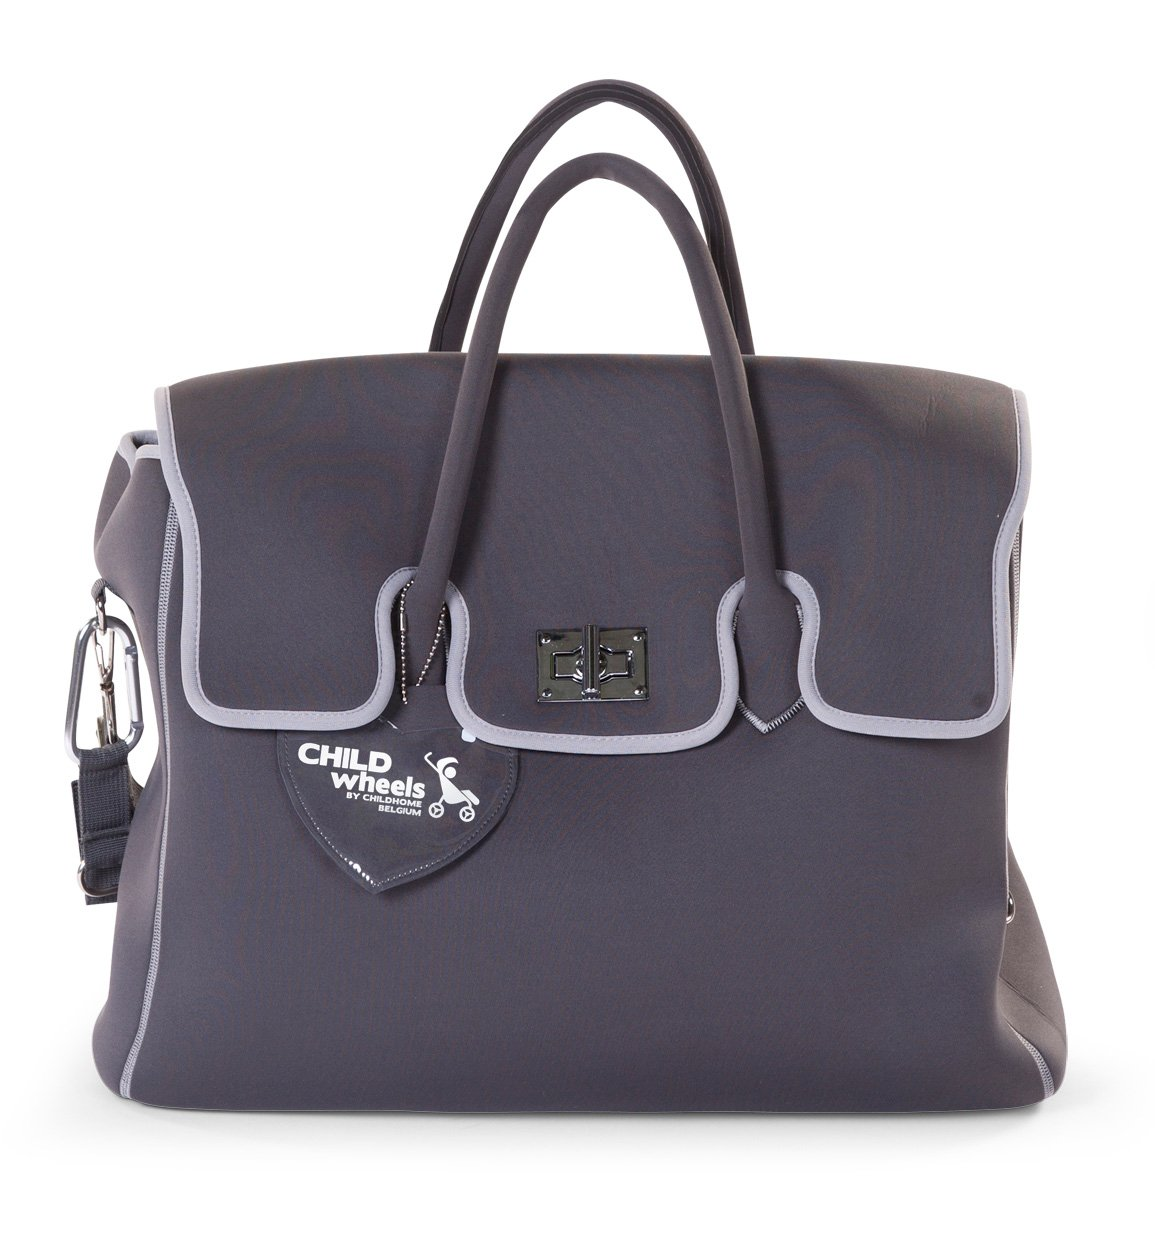 Childwheels CWNNBDG Neoprene Wickeltasche - dark grey